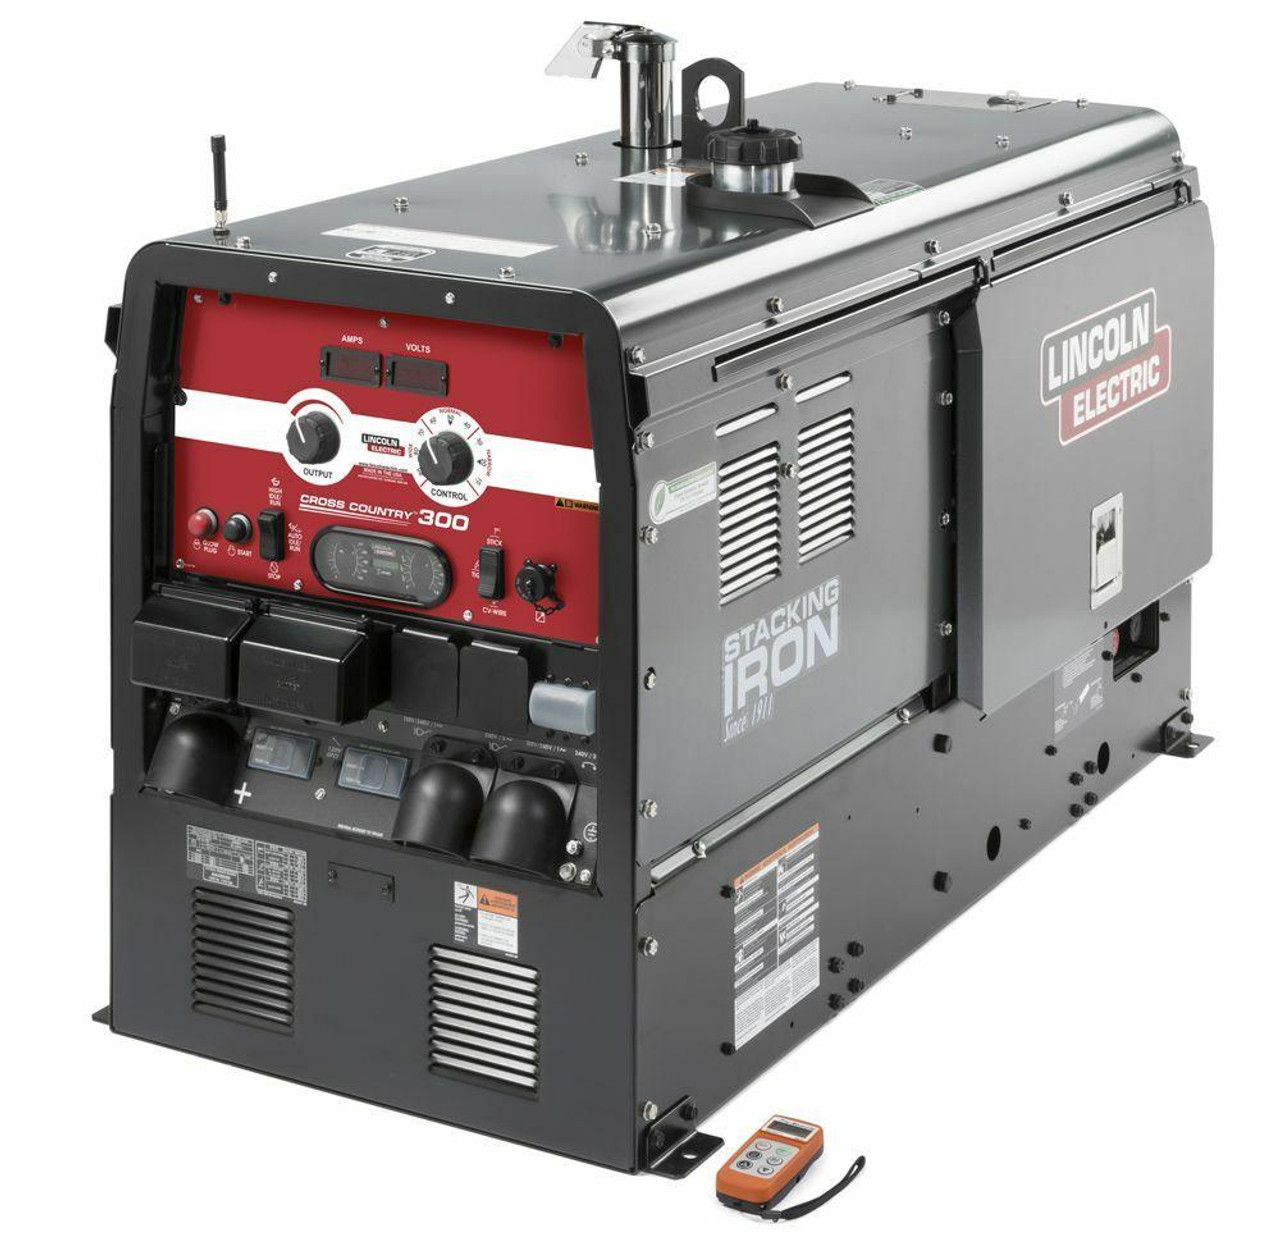 Lincoln Electric Lincoln Electric Cross Country 300 Engine Drive Welder KUBOTA w/F-installed Wireless Remote Control - K4166-2